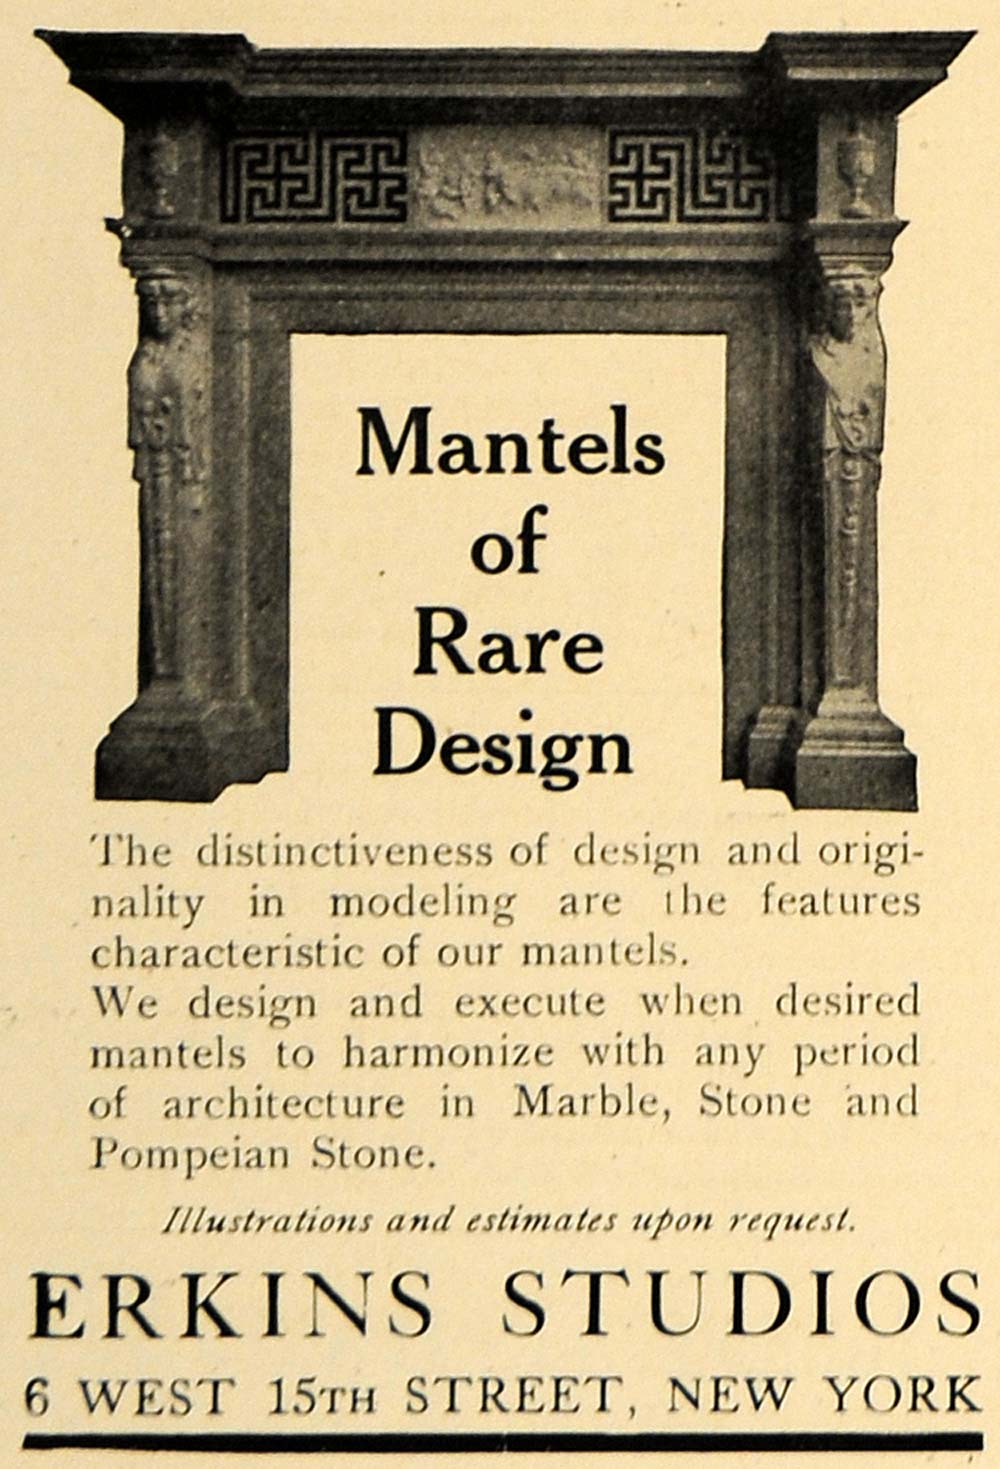 1907 Ad Erkings Studios Mantels Design Pompeian Stone - ORIGINAL ADVERTISING CL9